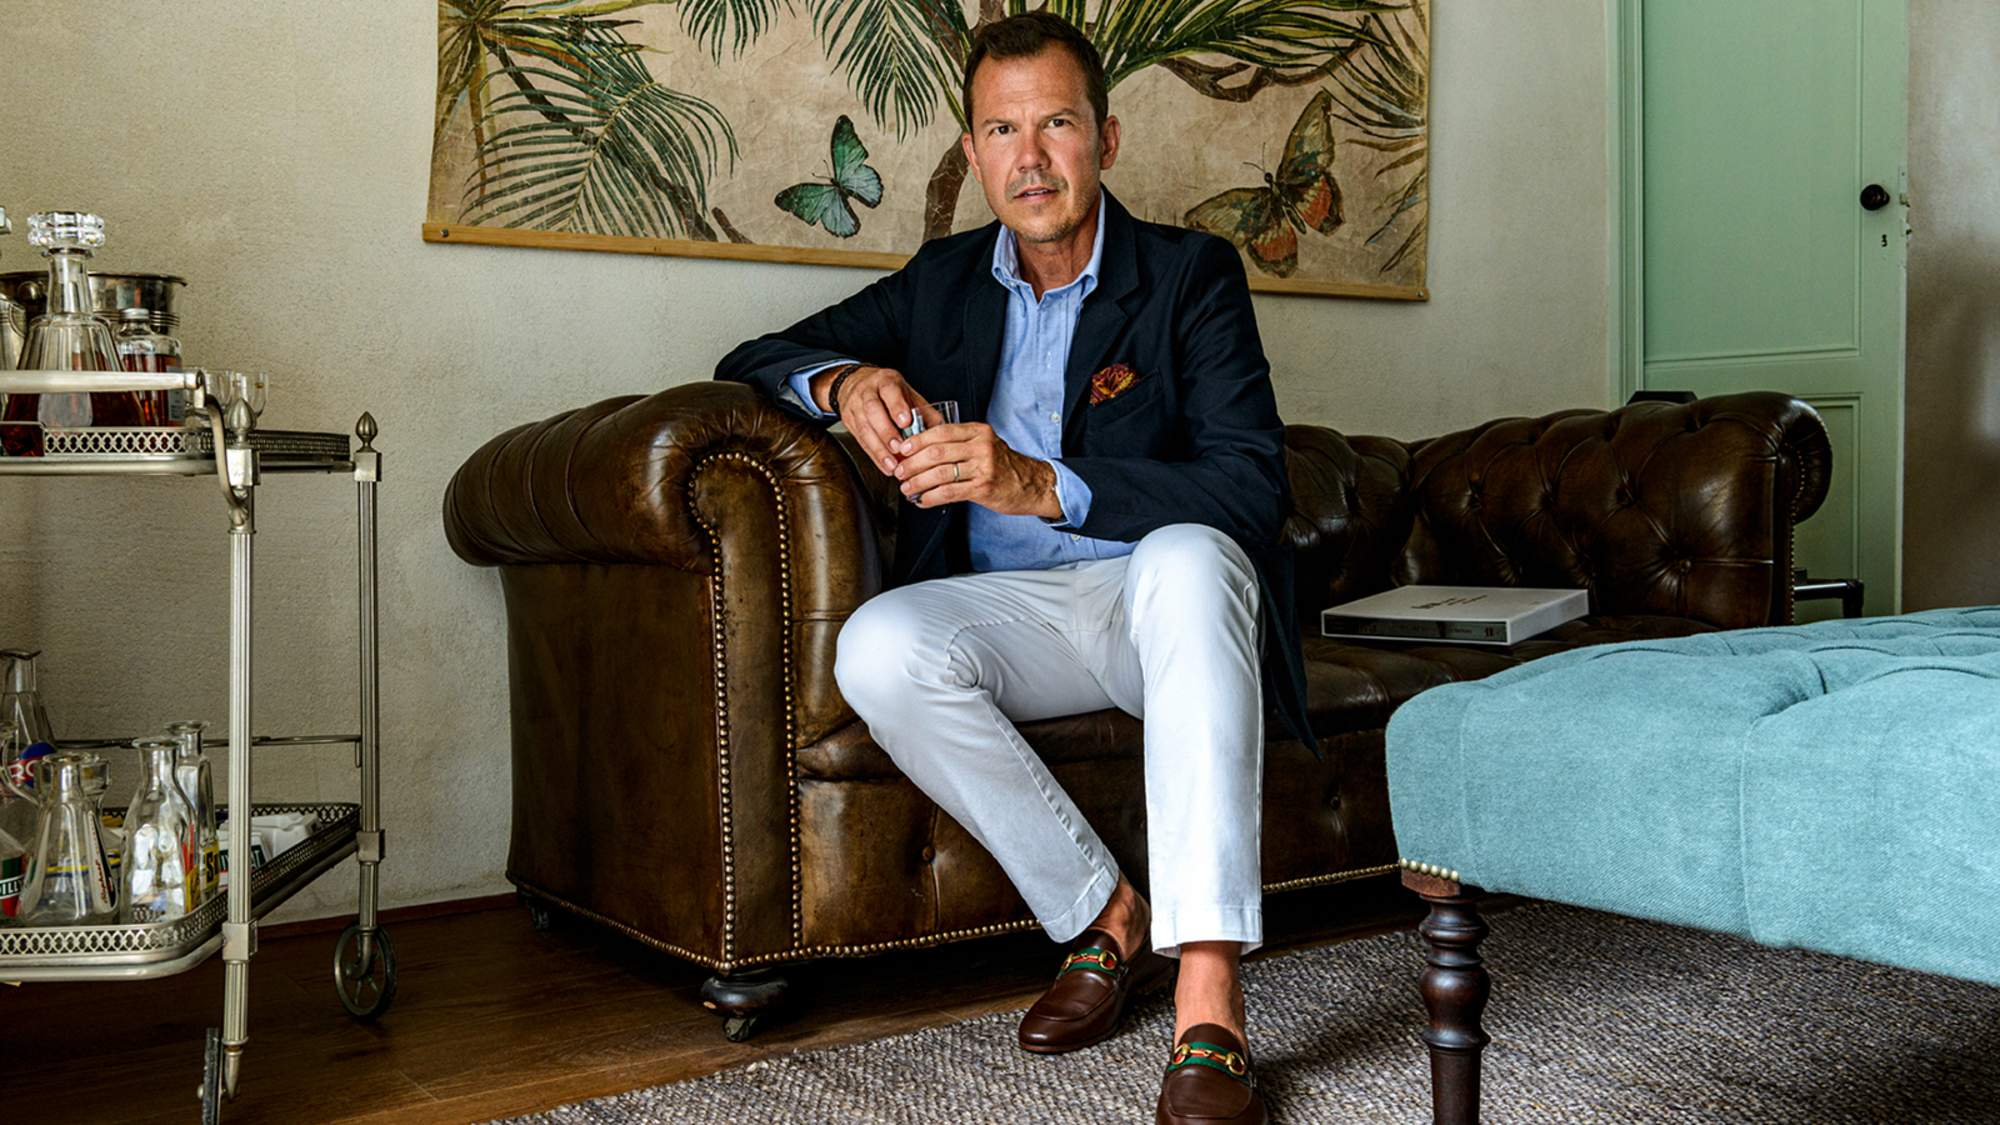 MR PORTER: HOW TO NAIL A RENOVATION WITH MR MATT HRANEK -  See  article